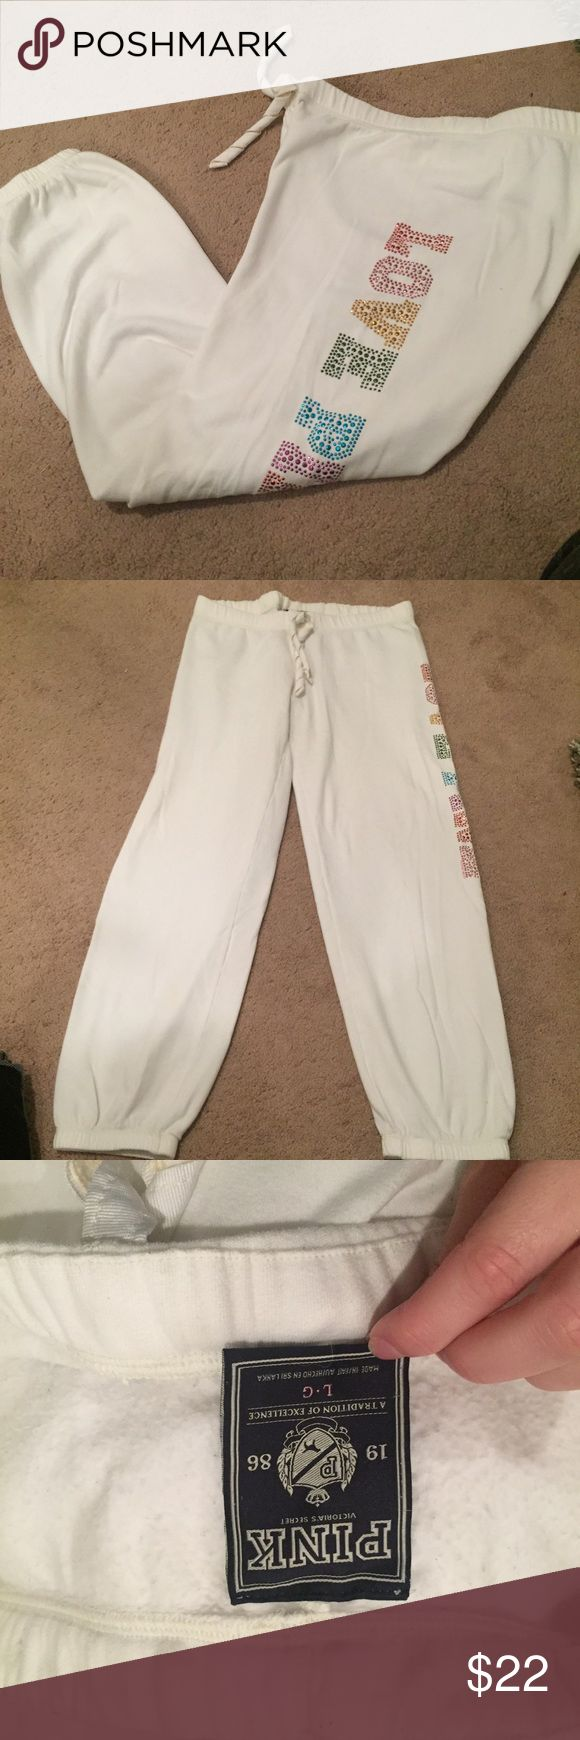 PINK Victoria's Secret - jogger sweatpants PINK Victoria's Secret - jogger sweatpants, size large. white- no discoloration great used condition. multi color rhinestone lettering along outside leg. PINK Victoria's Secret Pants Track Pants & Joggers